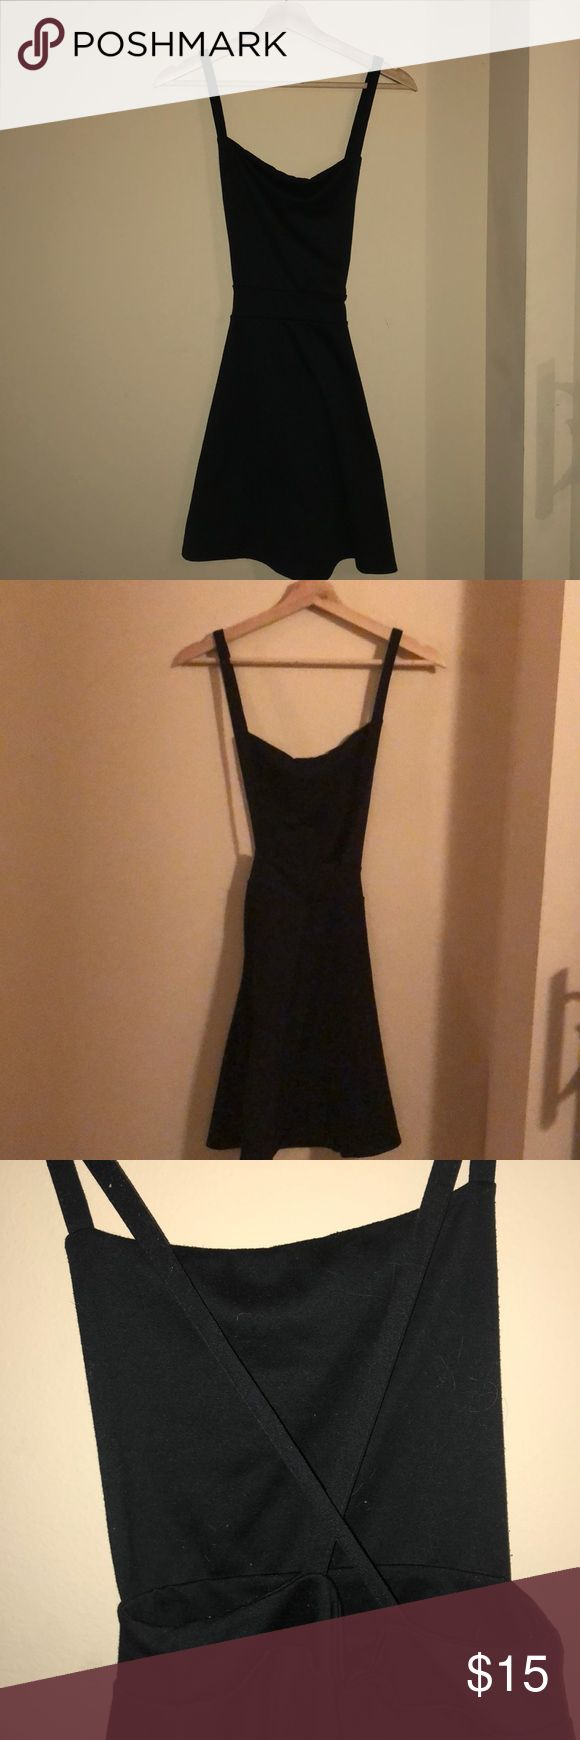 Black pinafore dress, US M (looks small in pics)🖤 What is it?: Black pinafore style dress, mini/thigh length, cross over at the back. Bought from Missguided, US M, stretchy fabric makes it flexible. Took tags off to try on but never worn.  Why selling?: I don't think the shape suits me Missguided Dresses Mini